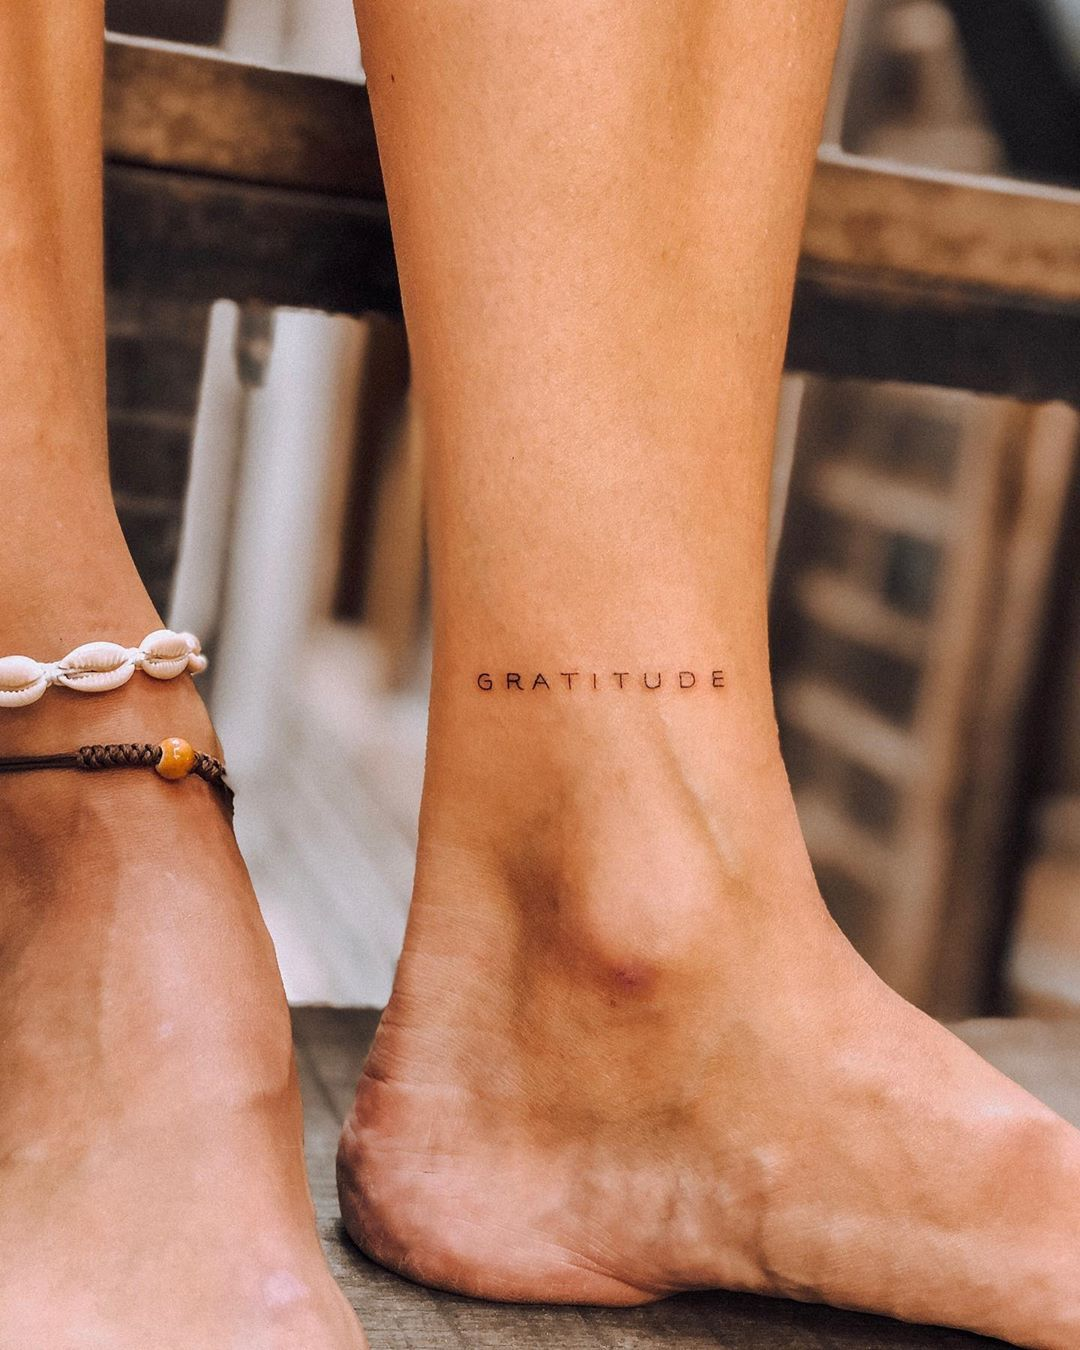 These 100 Hidden Tattoos Ideas Will Satisfy Your Craving For New Ink